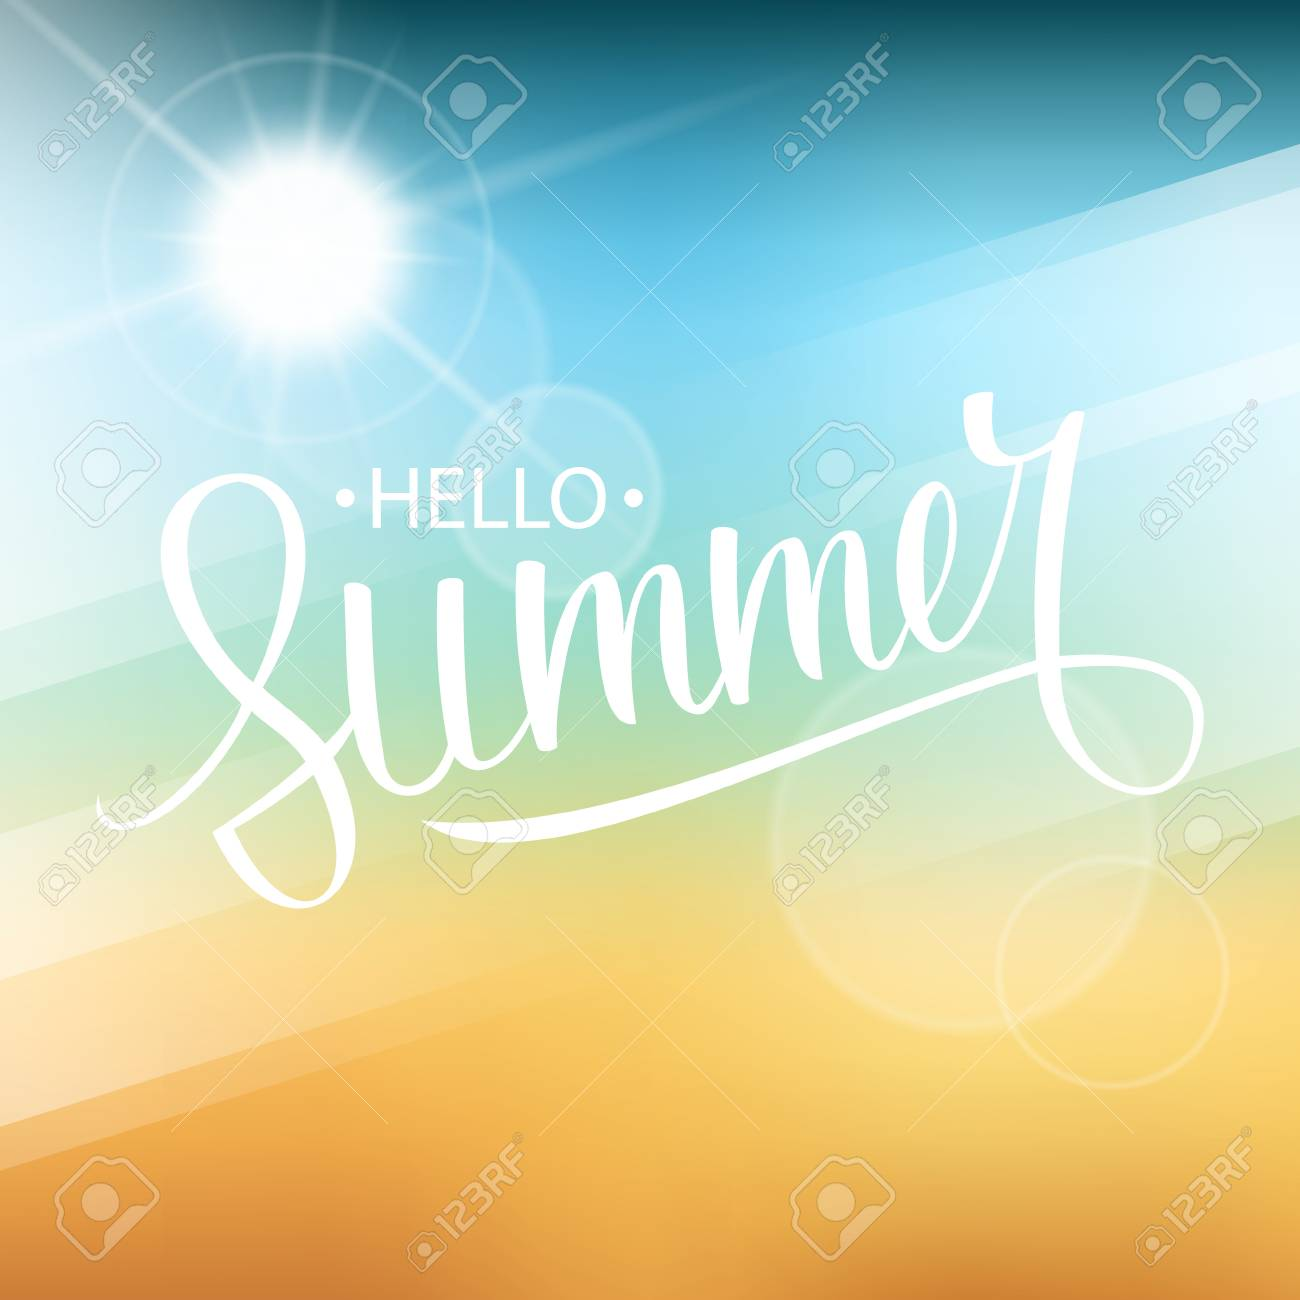 Hello Summer Card. Hand Drawn Lettering Text Design With Blurred Summer  Beach Background. Vector